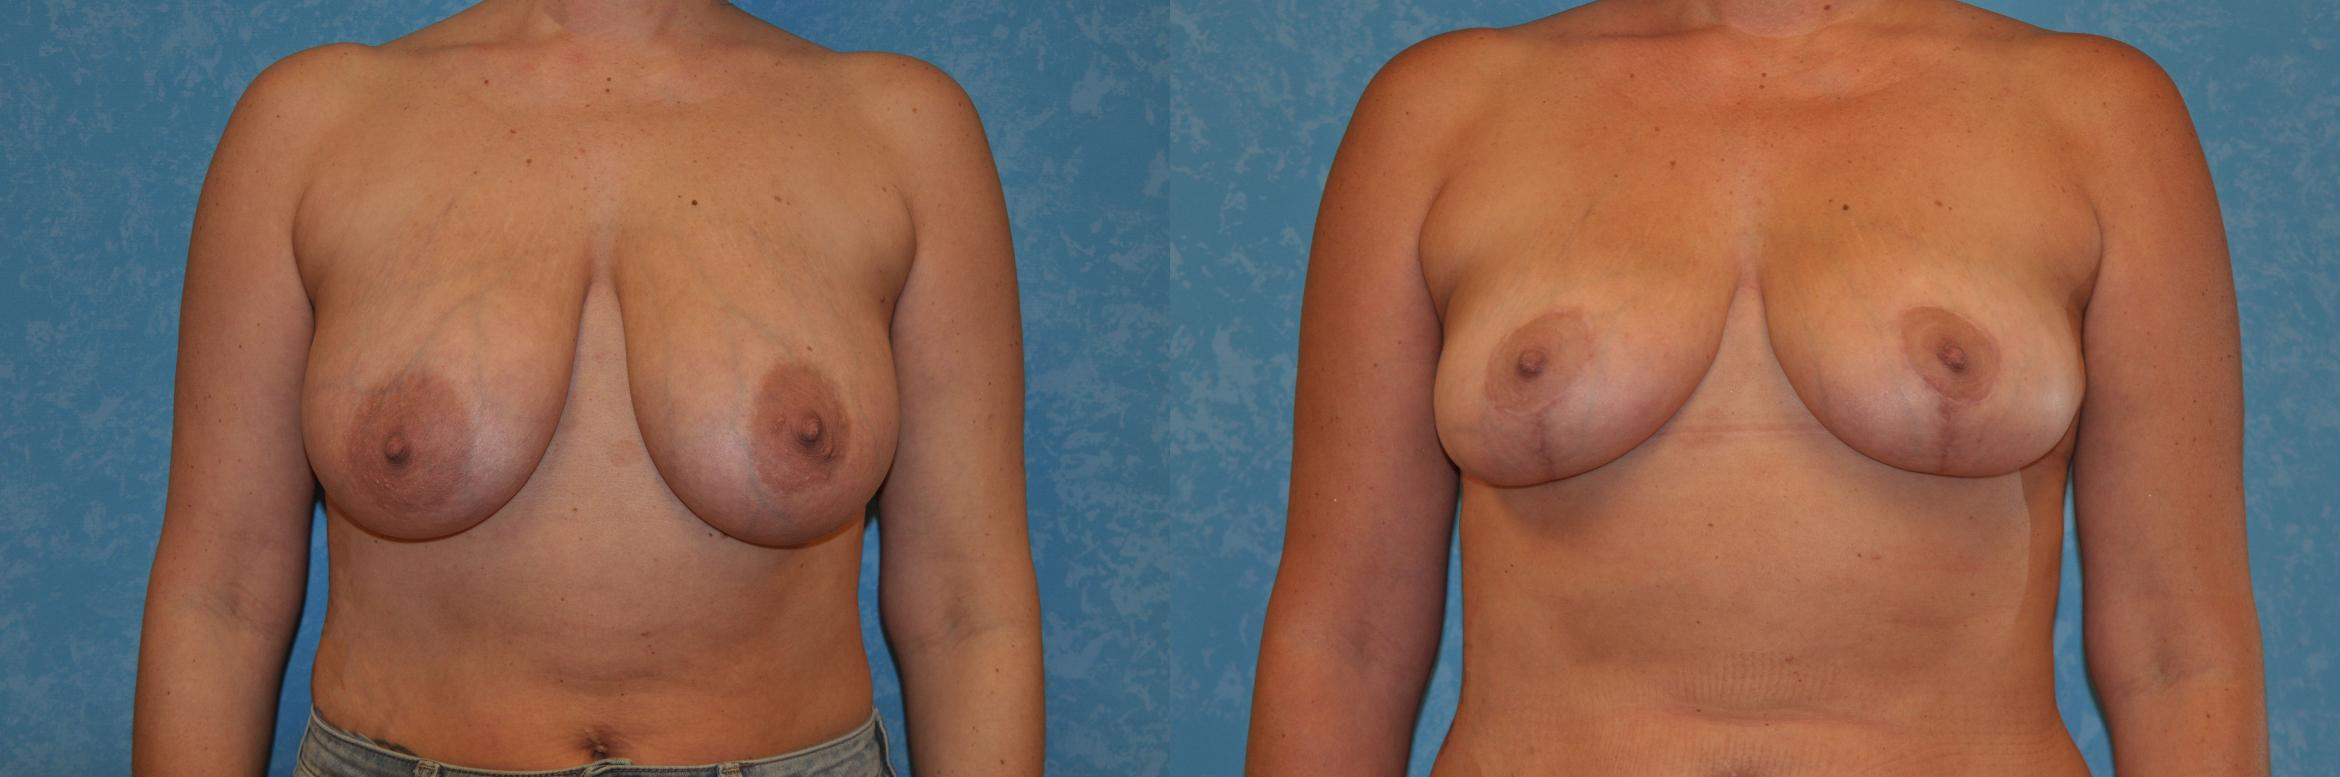 Breast Lift Before & After Photo | Toledo, Ohio | Dr. Craig Colville